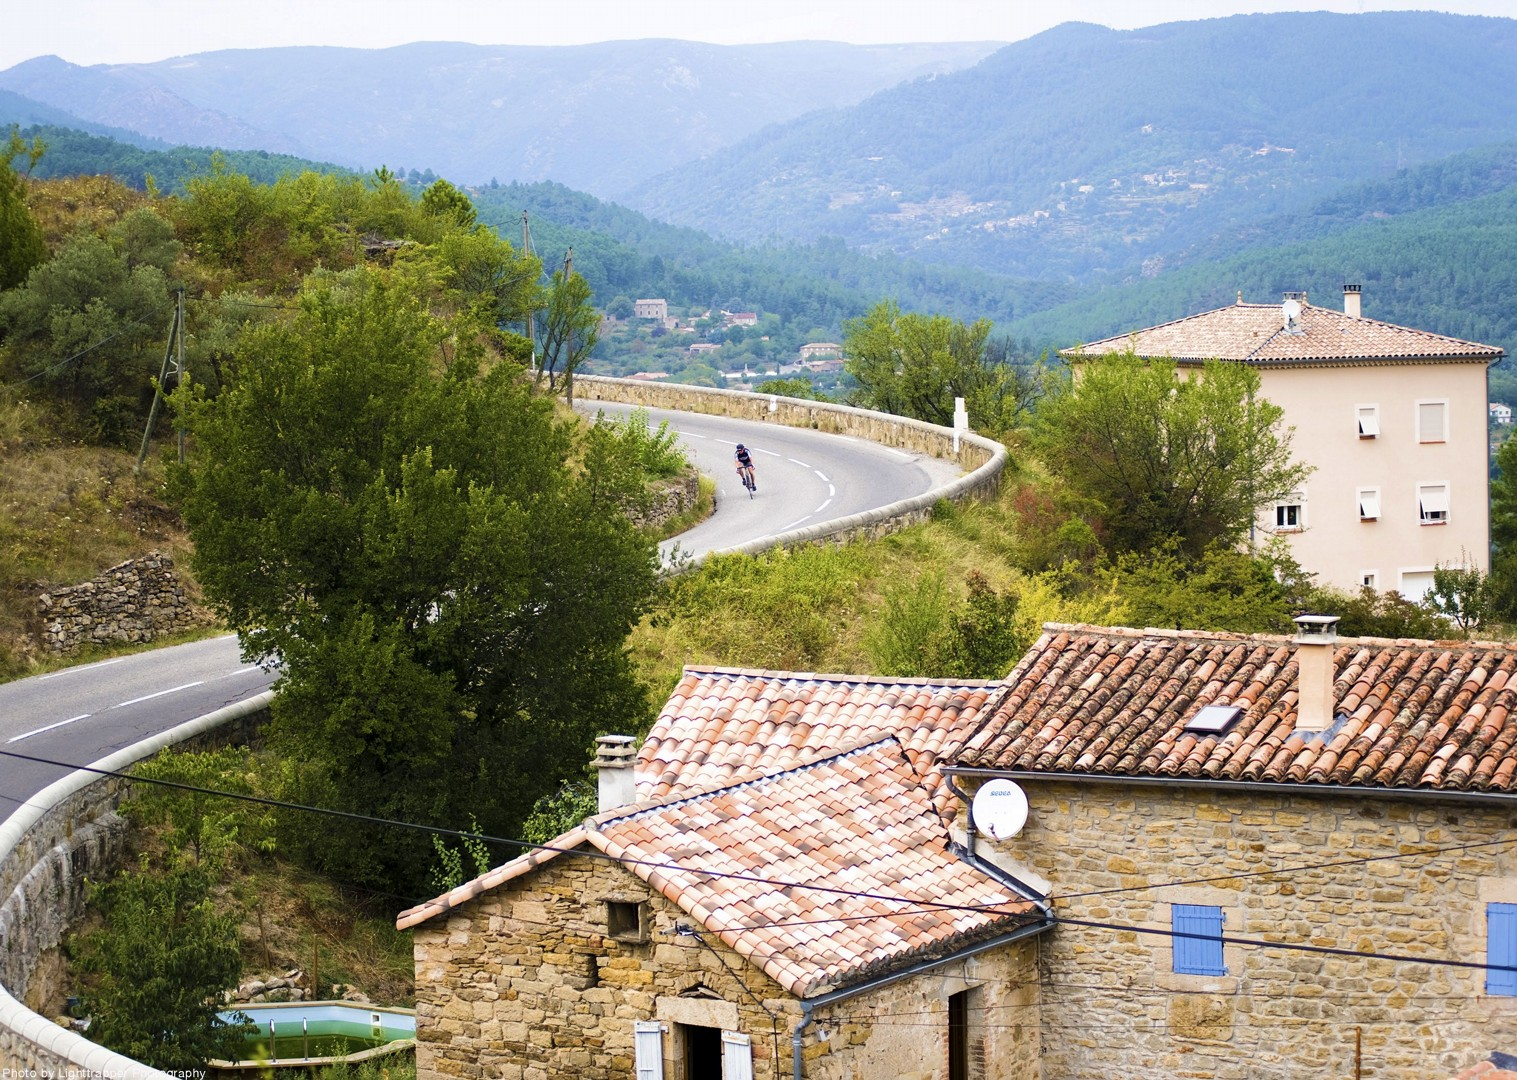 ballon-d'alsace-tour-de-france-road-cycling-holiday-france.jpg - NEW! France - Alsace, Burgundy and Beaujolais - Road Cycling